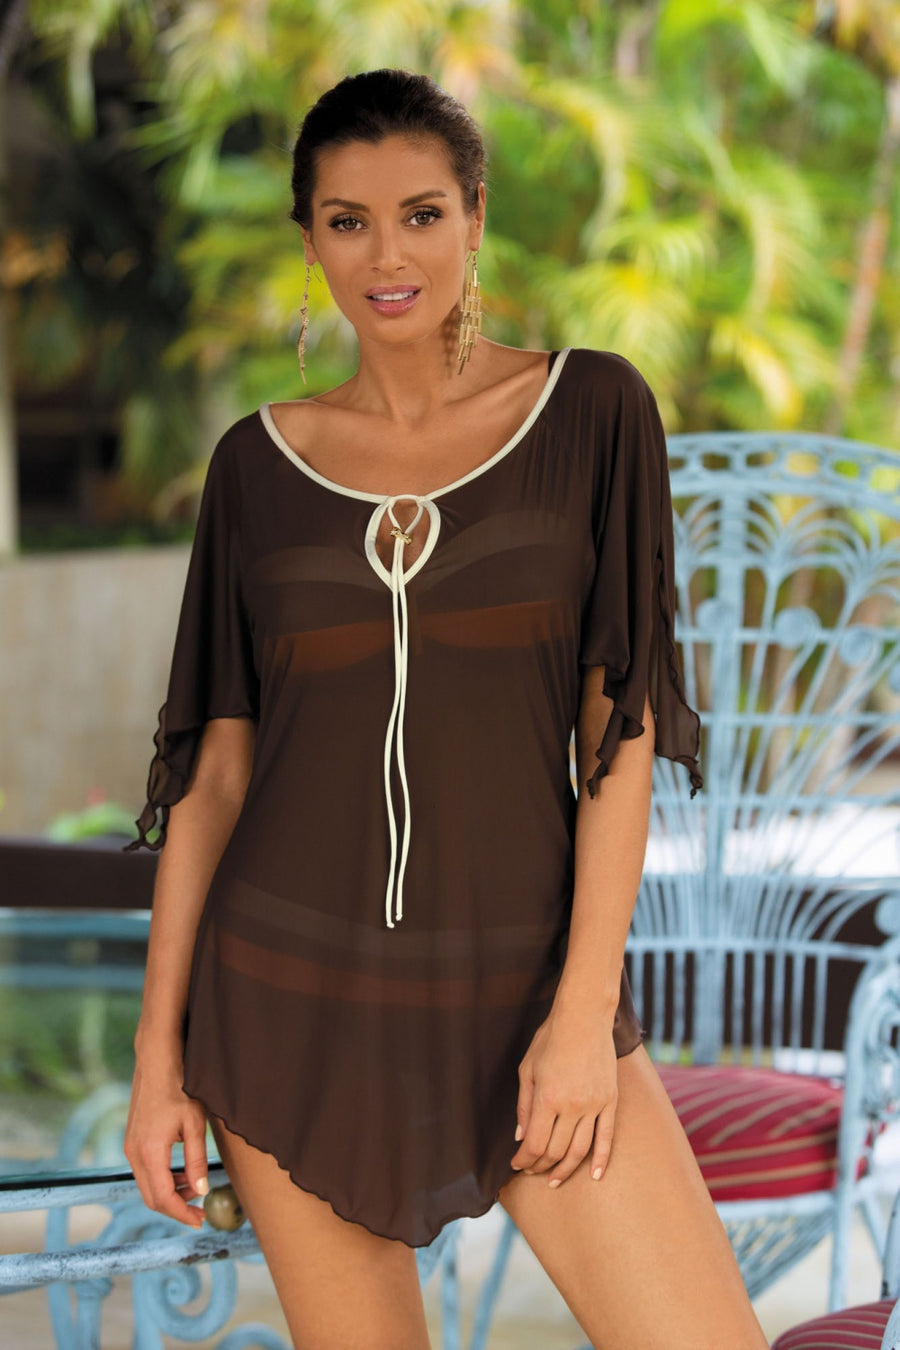 Beach tunic model 56761 Marko